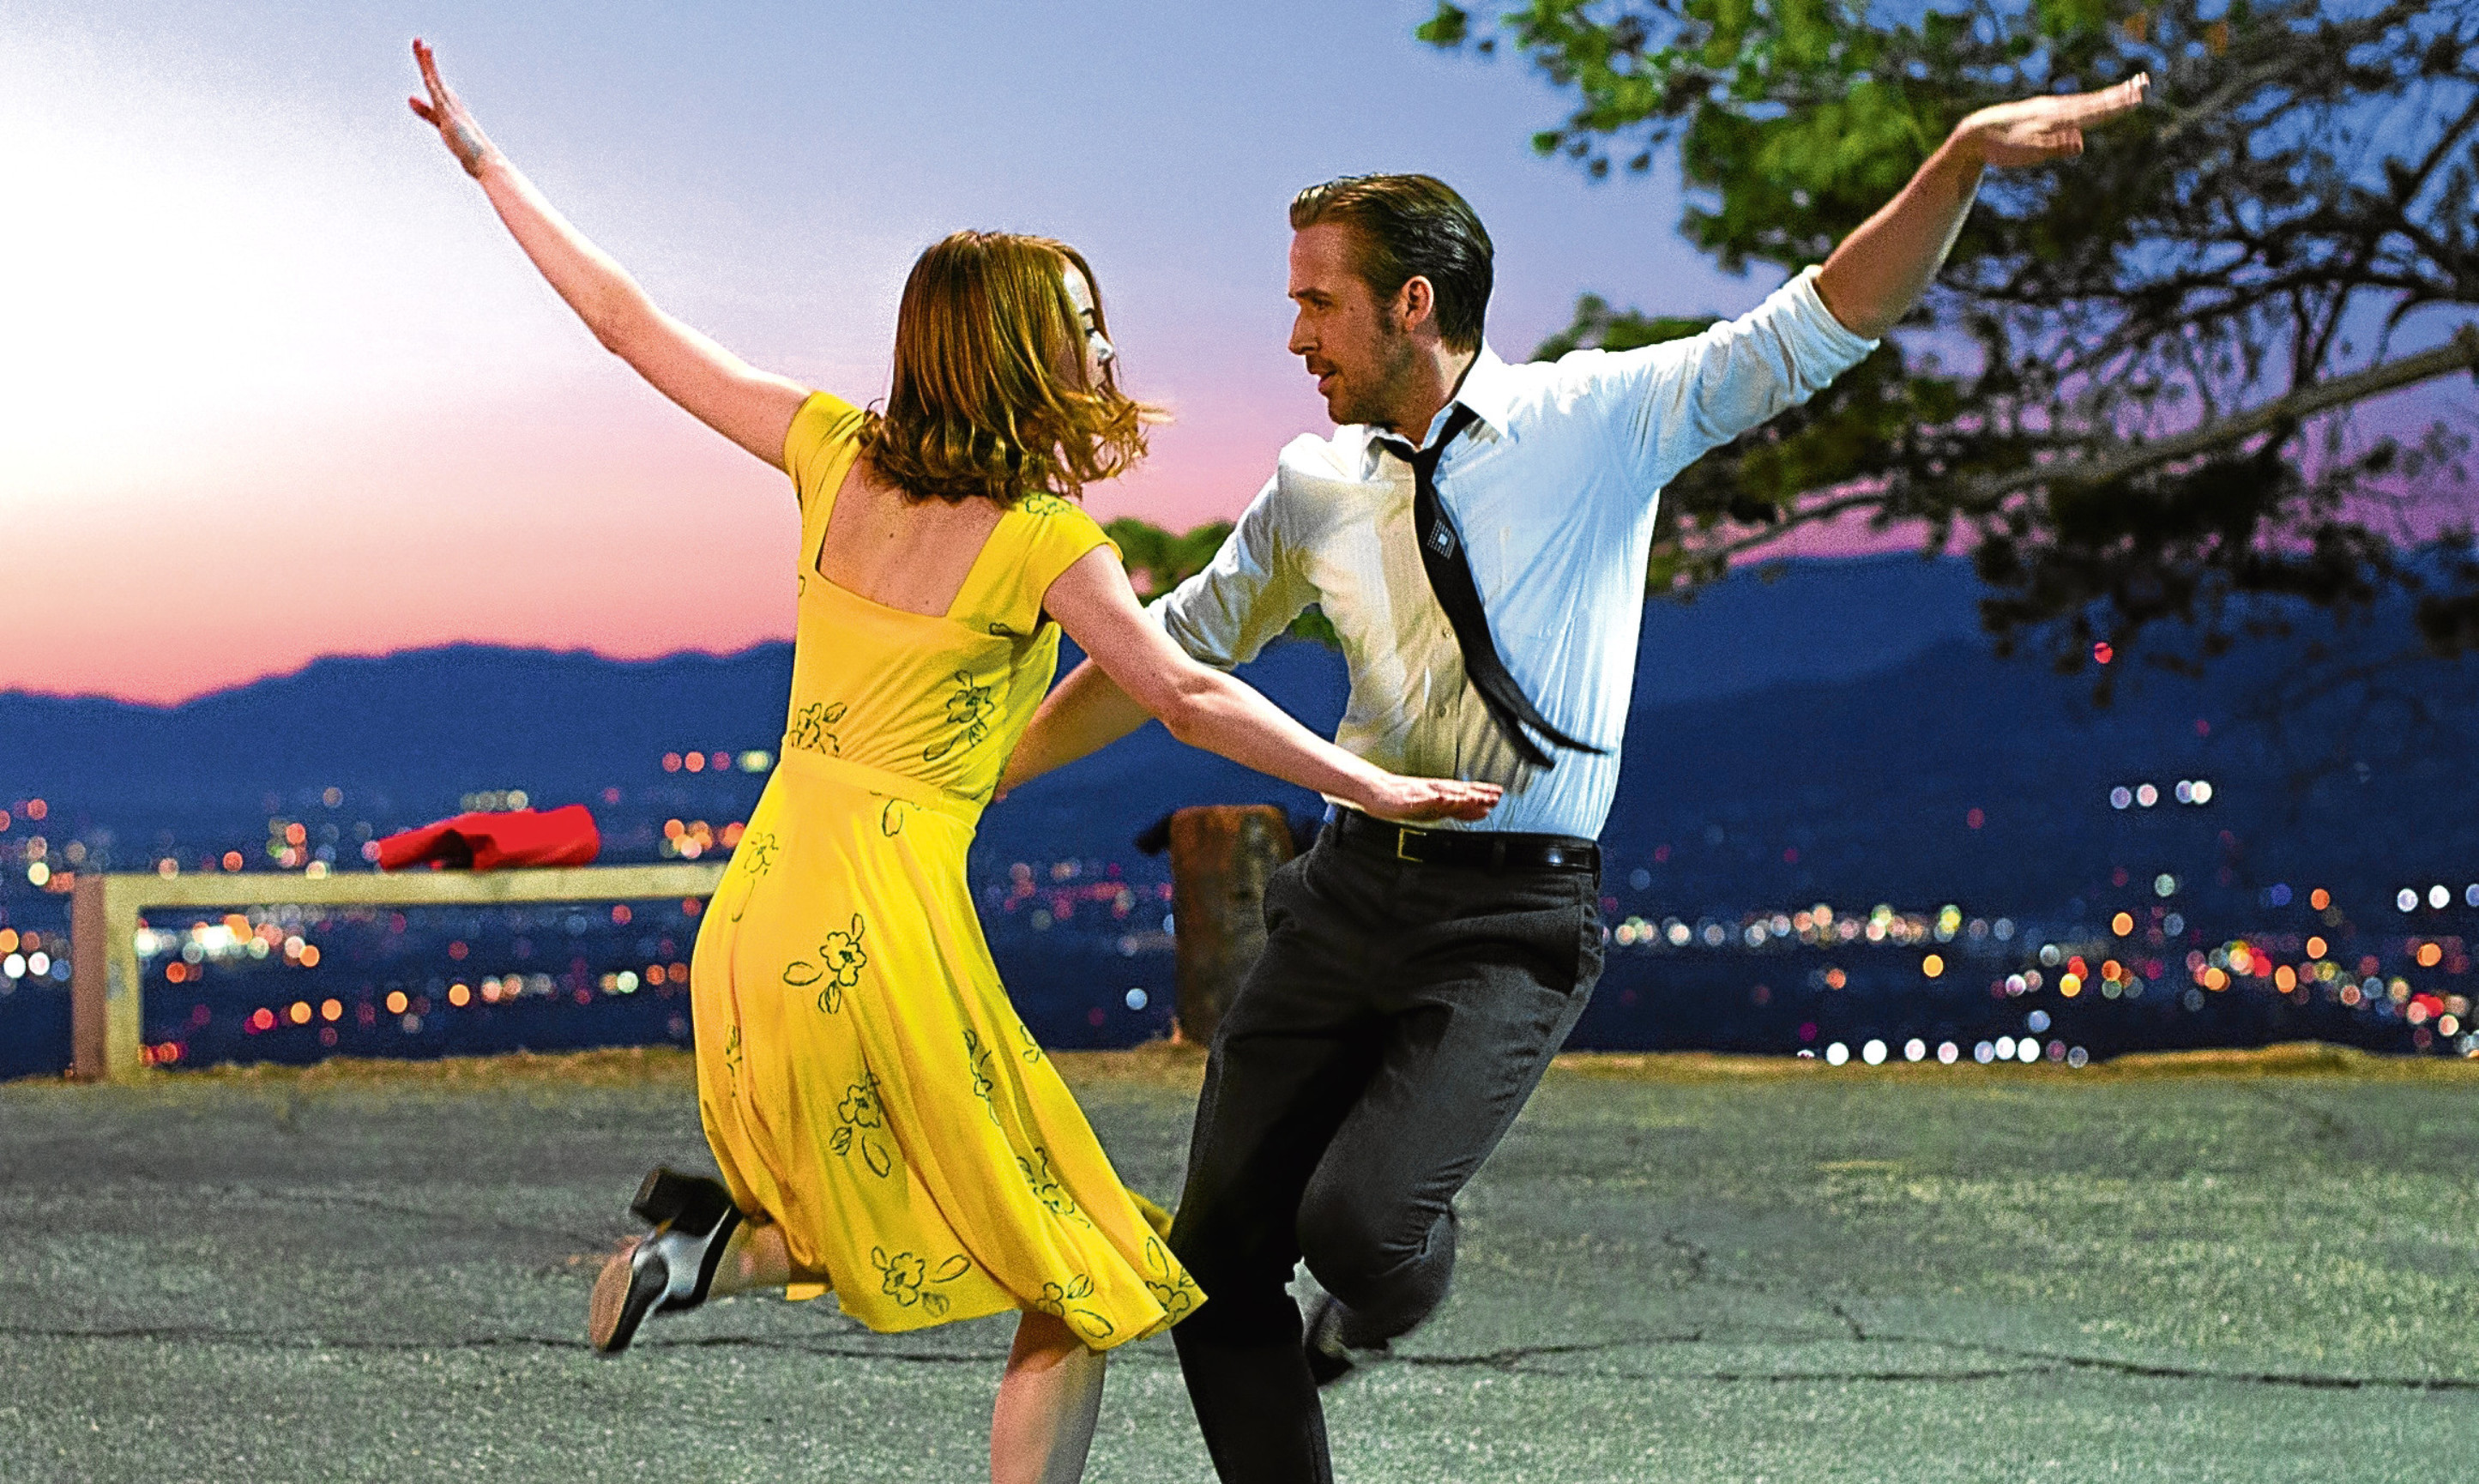 Lucy says La La Land, starring Emma Stone and Ryan Gosling, is a great piece of escapism - if you allow it to be.